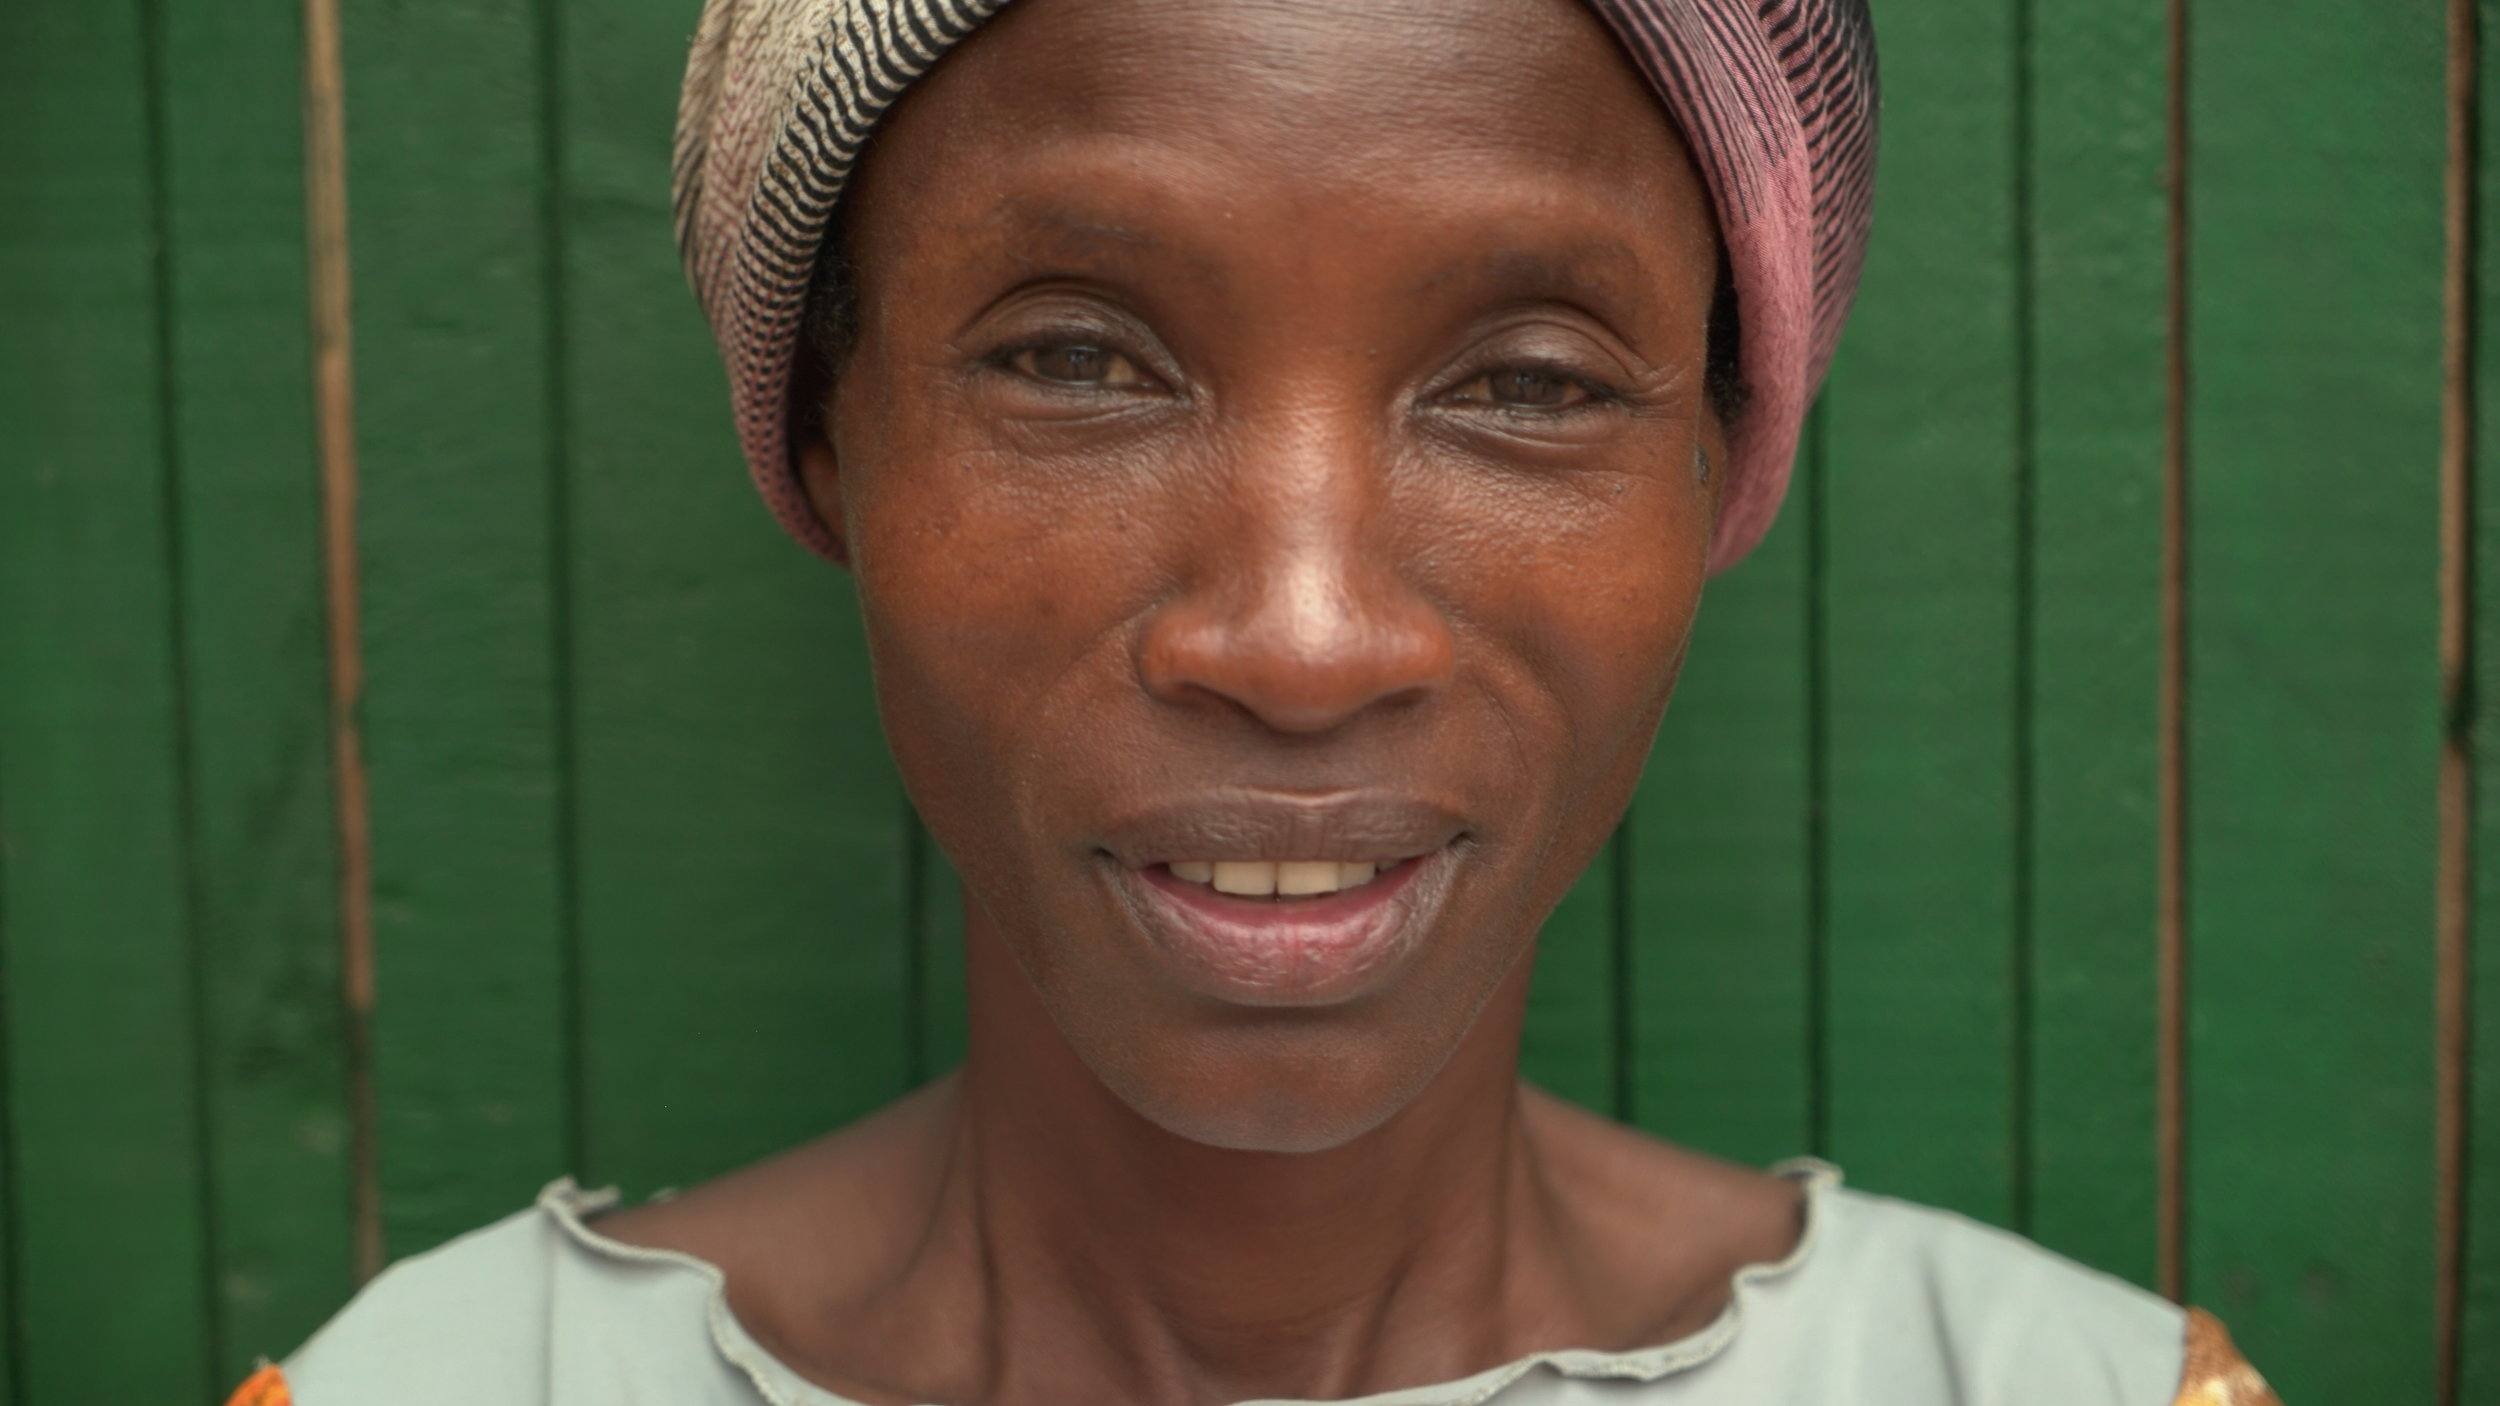 Jean - is 45 years old and has 4 children. She is the quiet type and usually gets all the pans greased and ready for the bread. When the bakery is not in operation she makes around $4 per month.